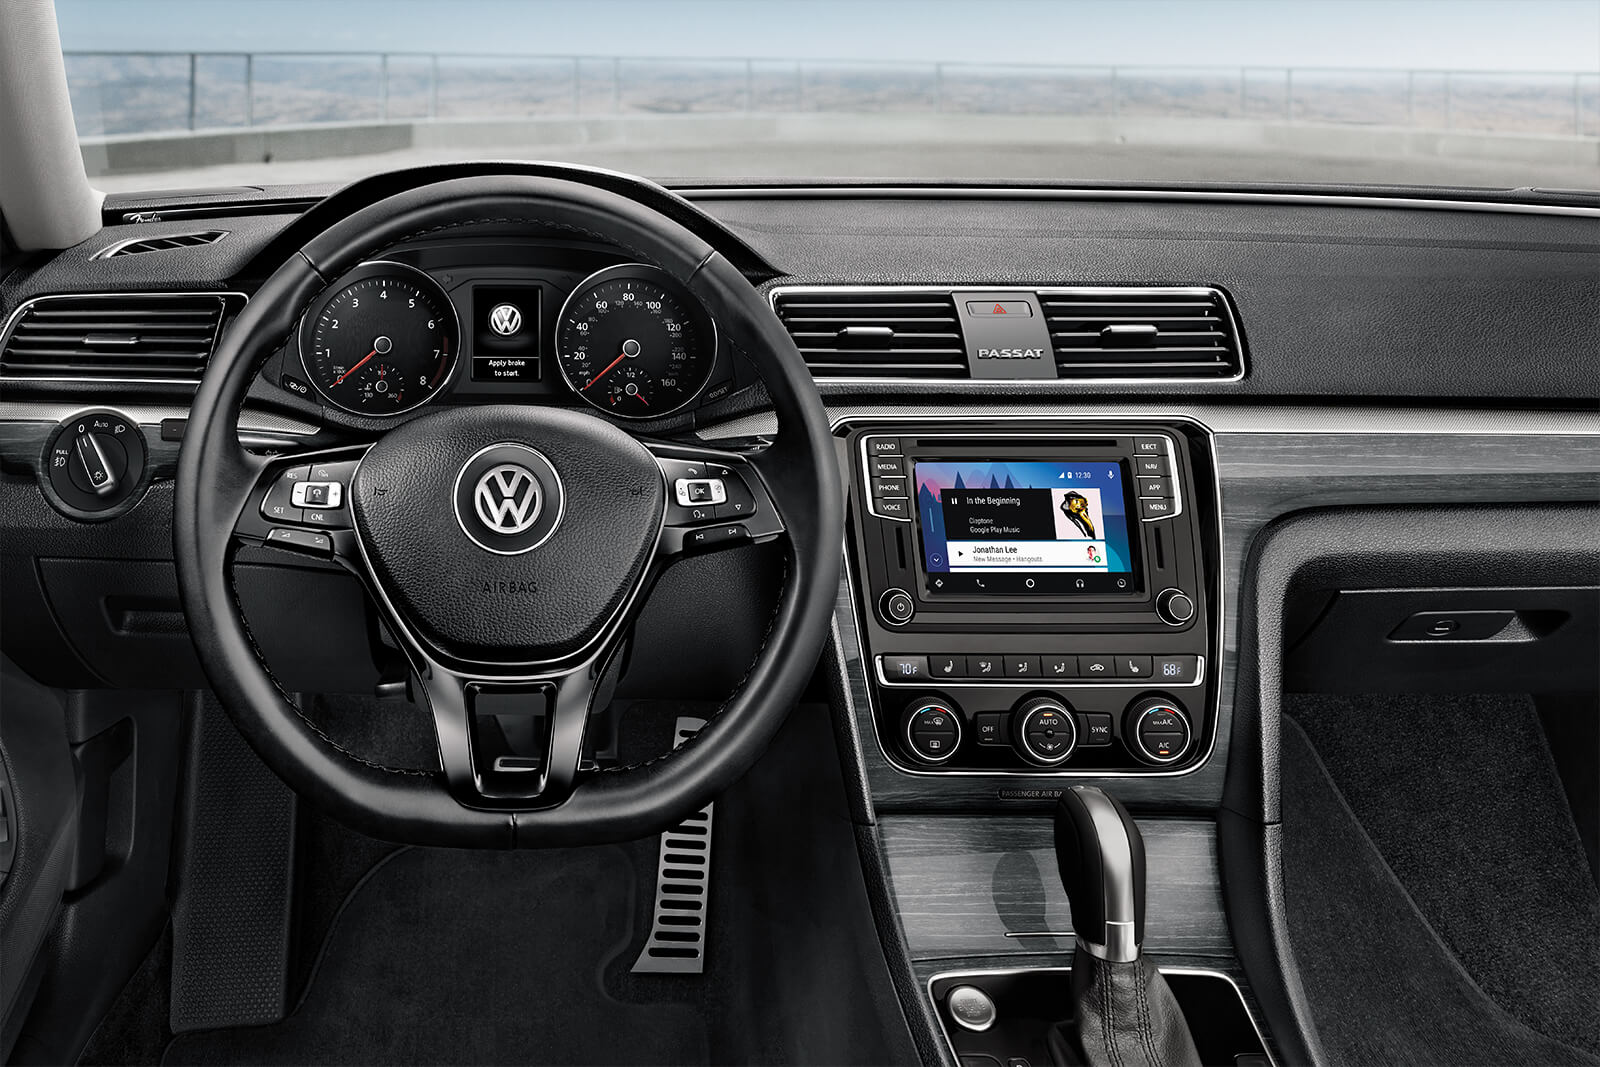 Interior of the 2019 Volkswagen Passat